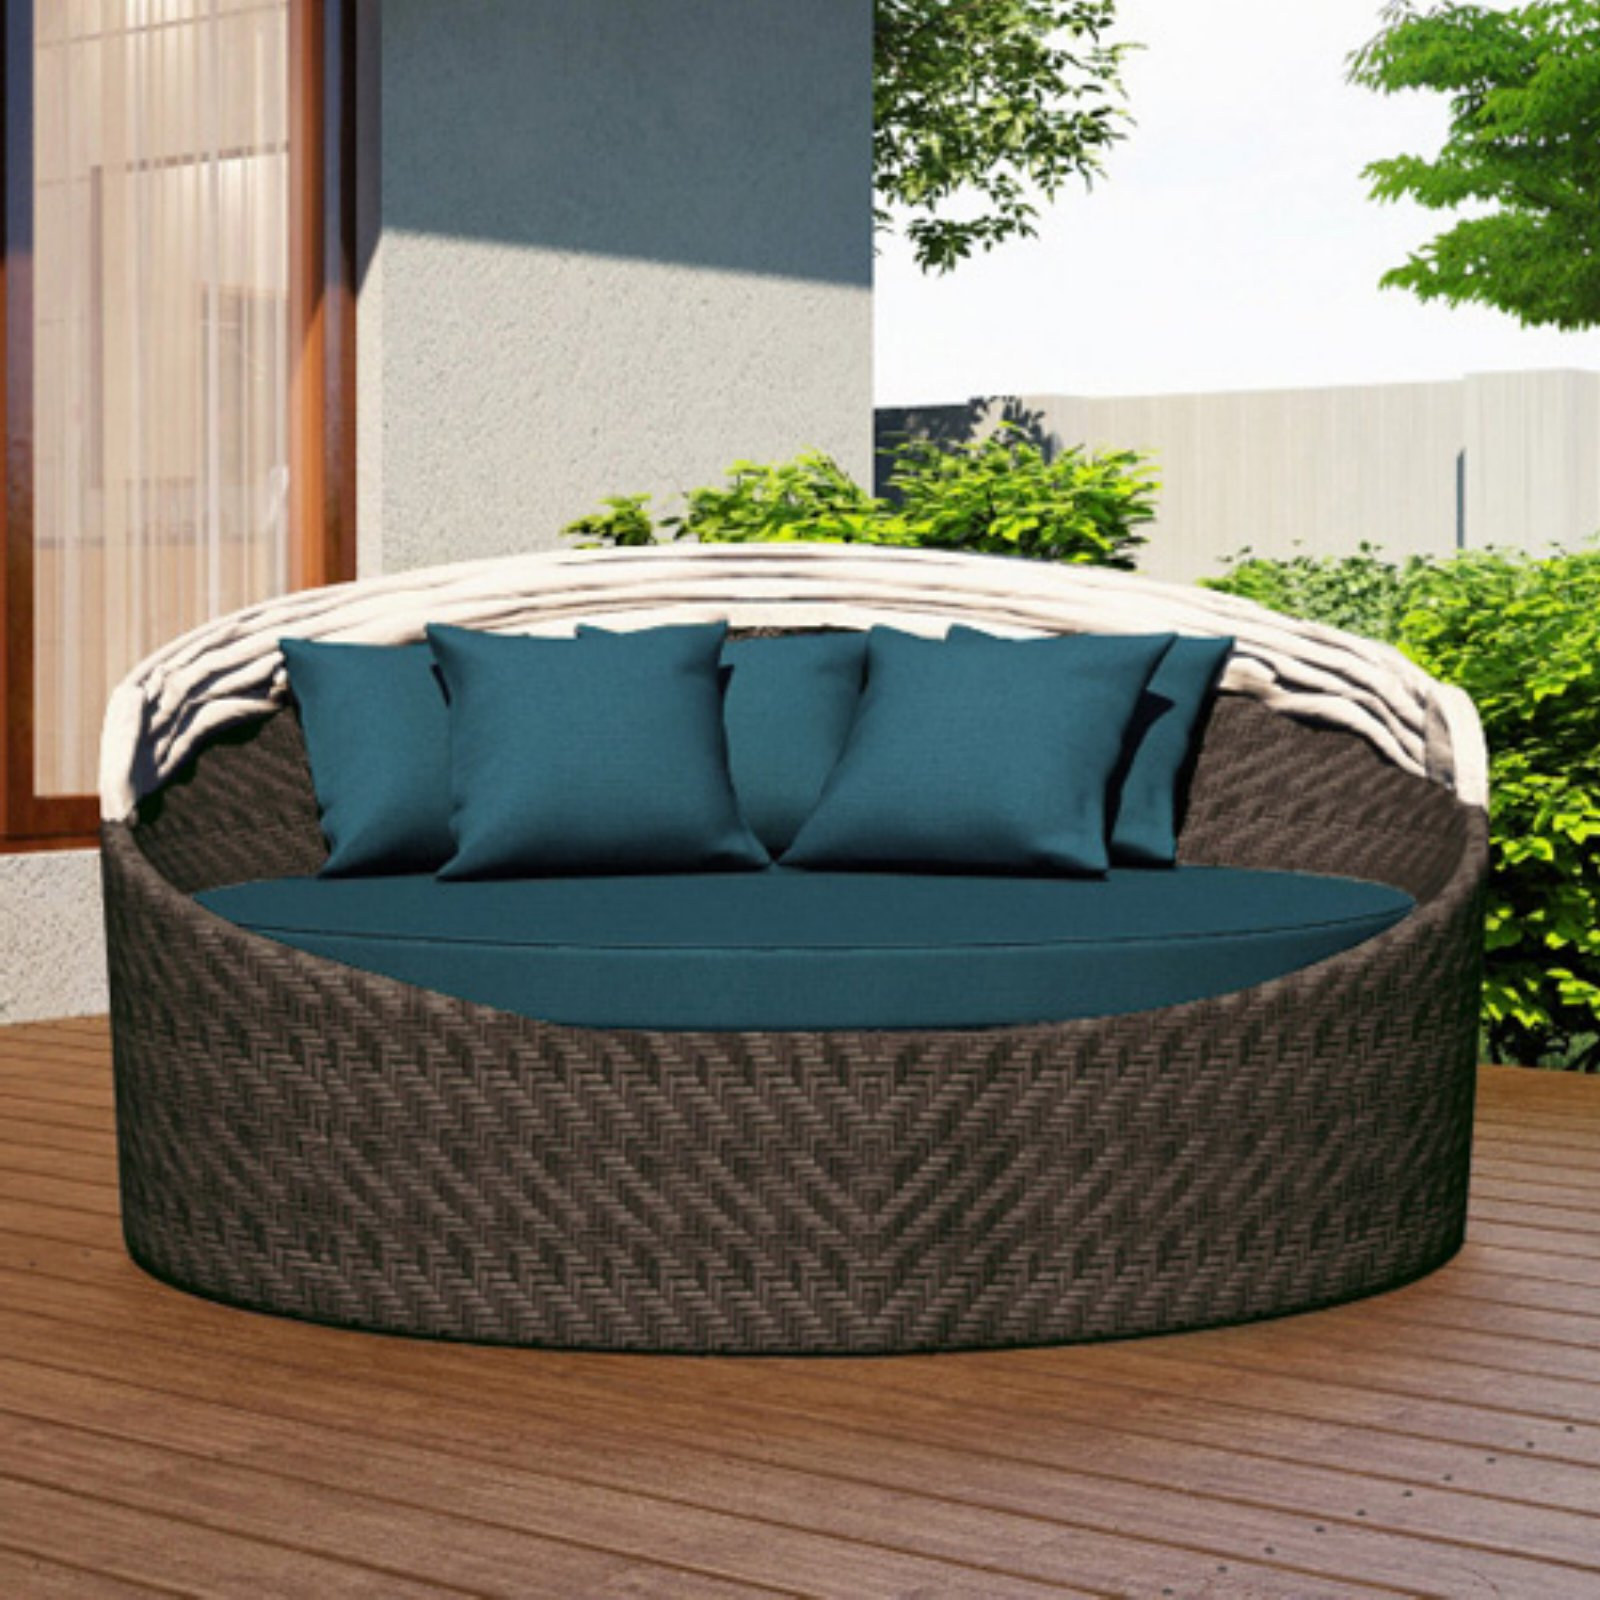 Best And Newest Harmonia Living Wink Outdoor Canopy Daybed Cast Lagoon Pertaining To Keiran Patio Daybeds With Cushions (View 18 of 20)